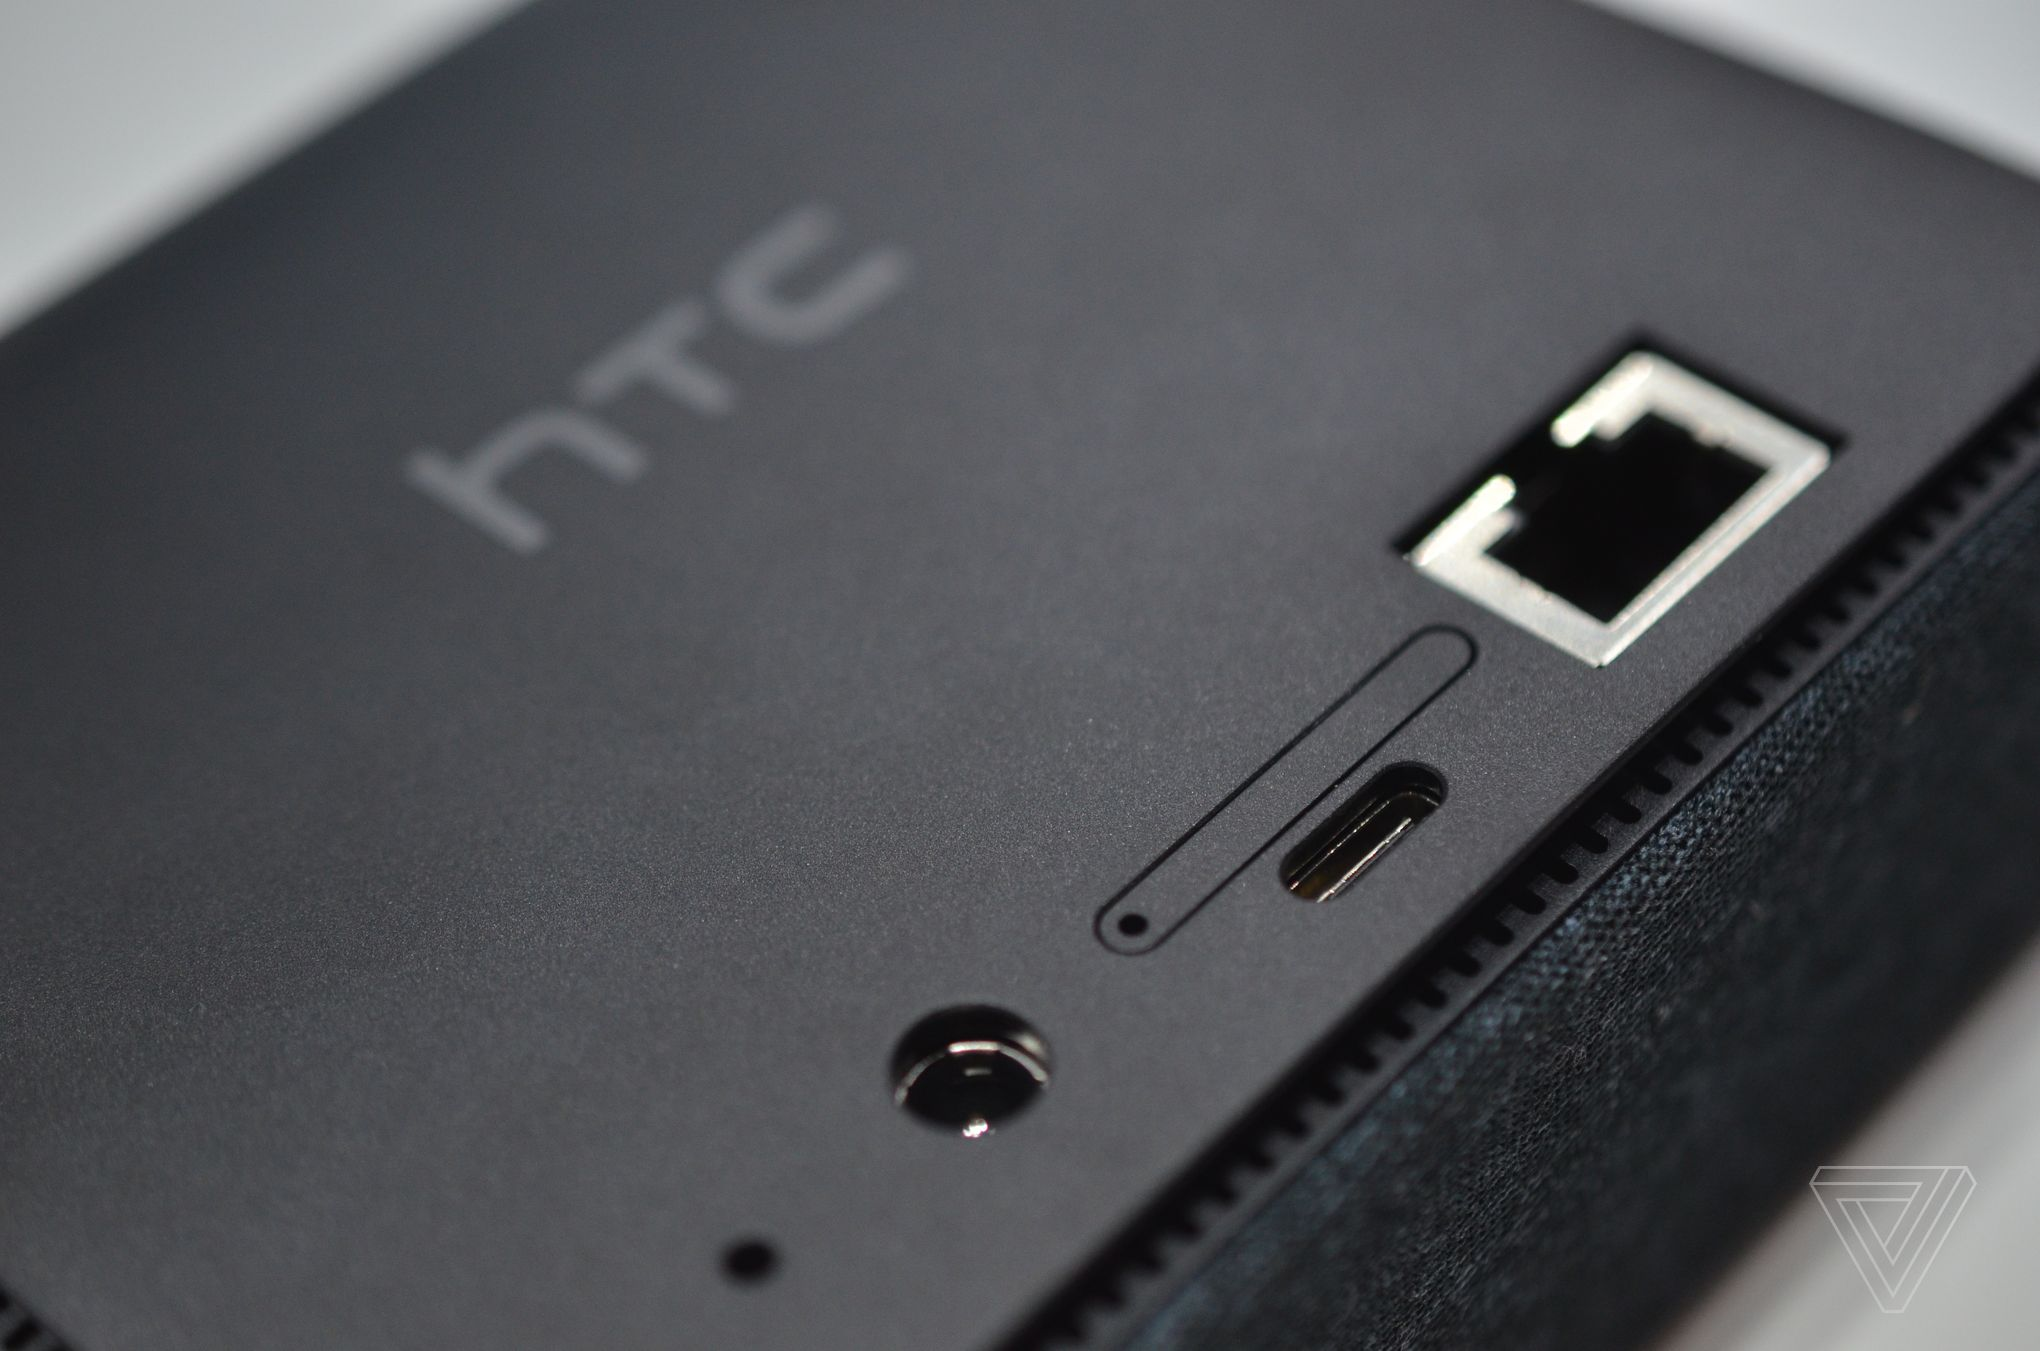 HTC's 5G Hub is a 5G hotspot, Android entertainment device, and